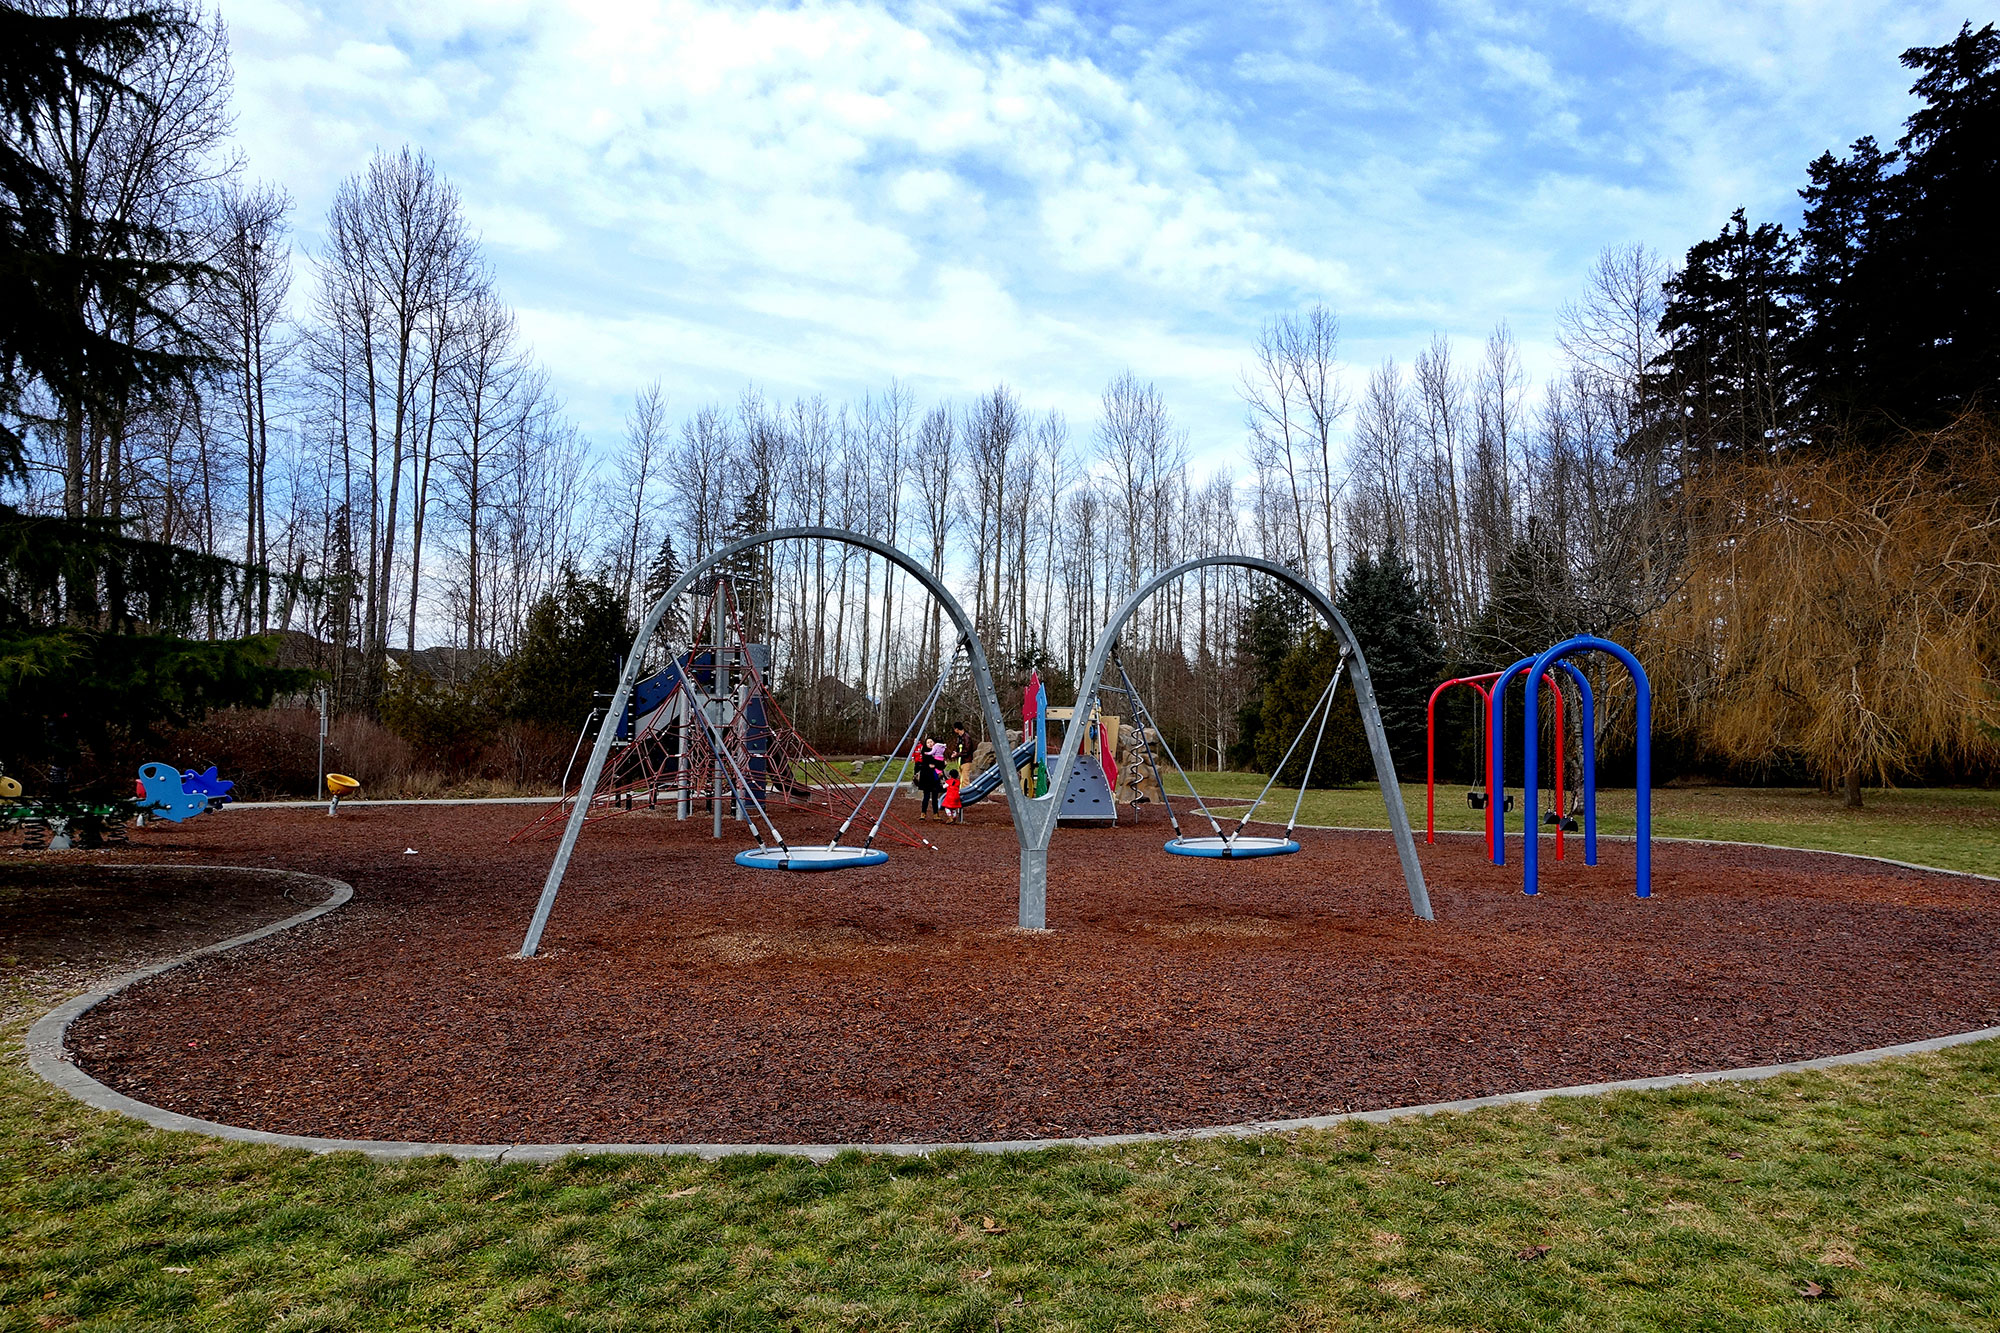 Open space and a great children's play area